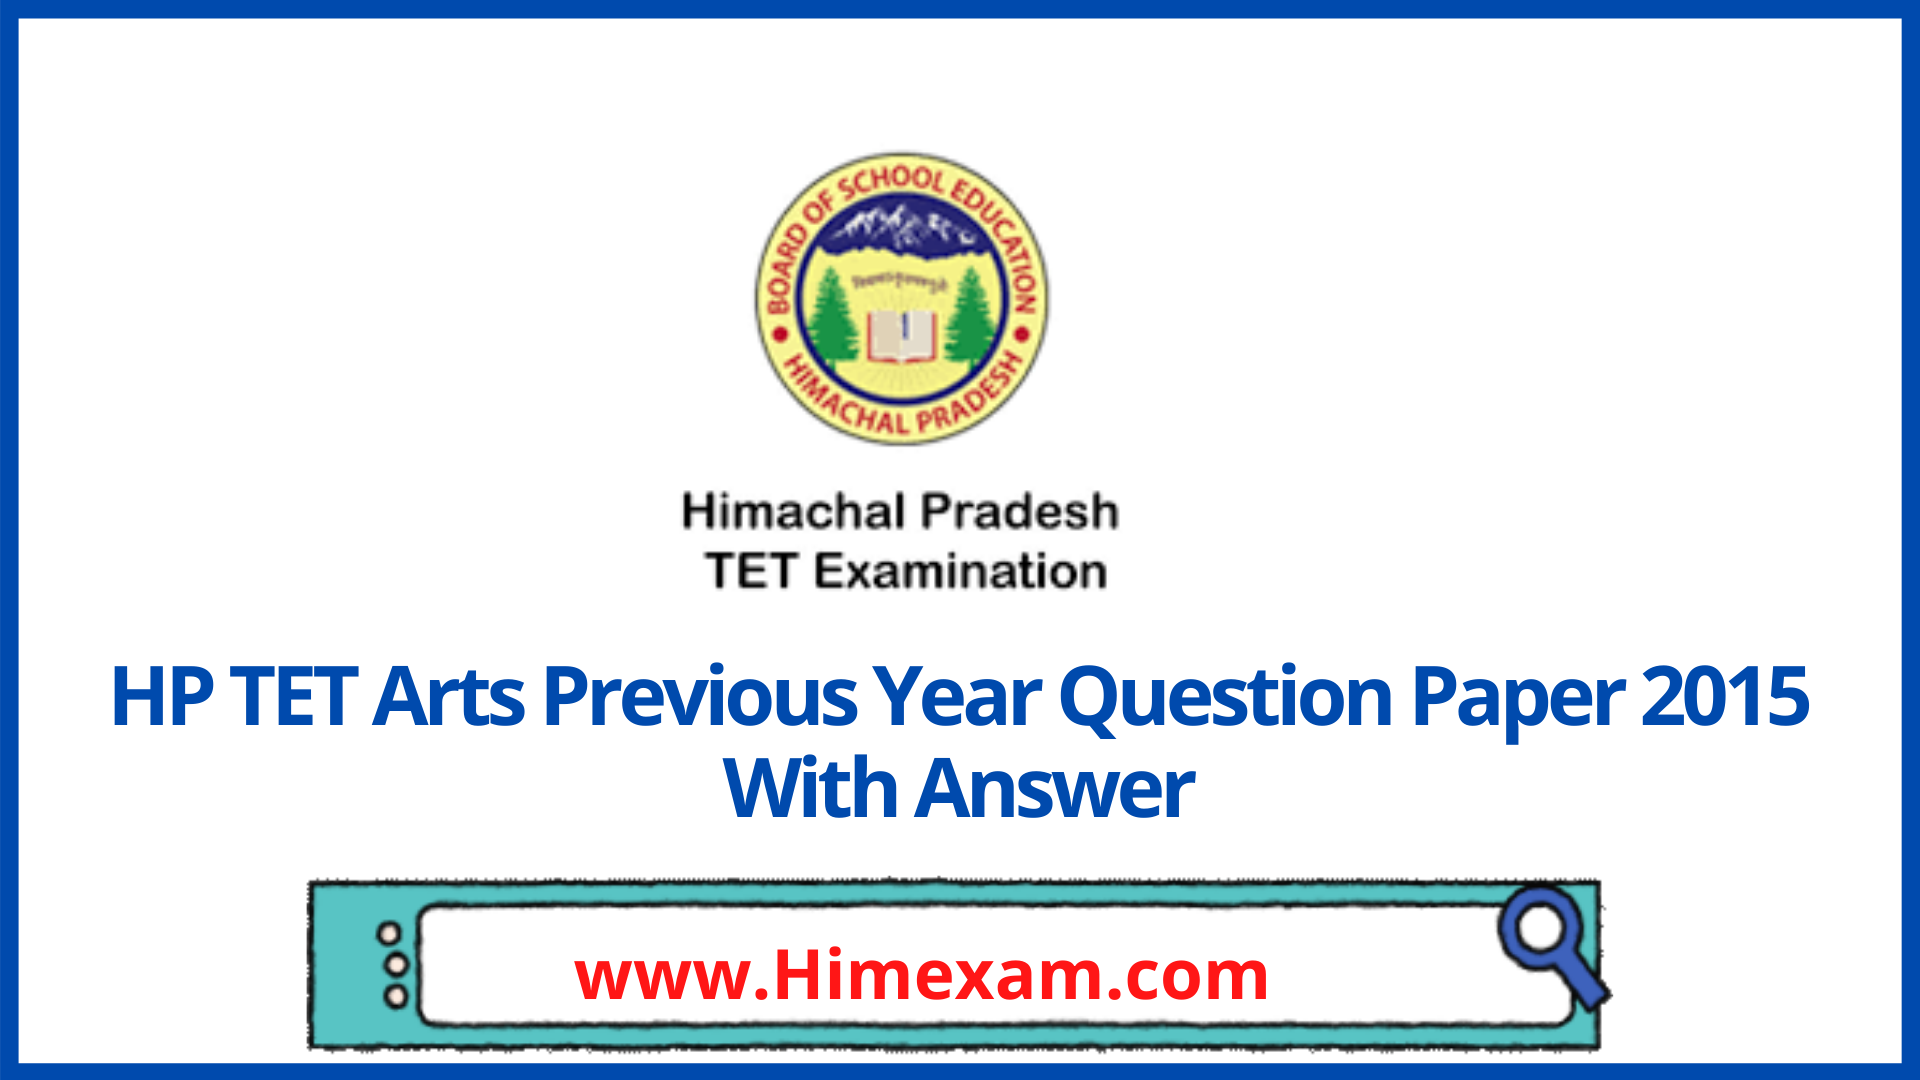 HP TET Arts Previous Year Question Paper 2015 With Answer